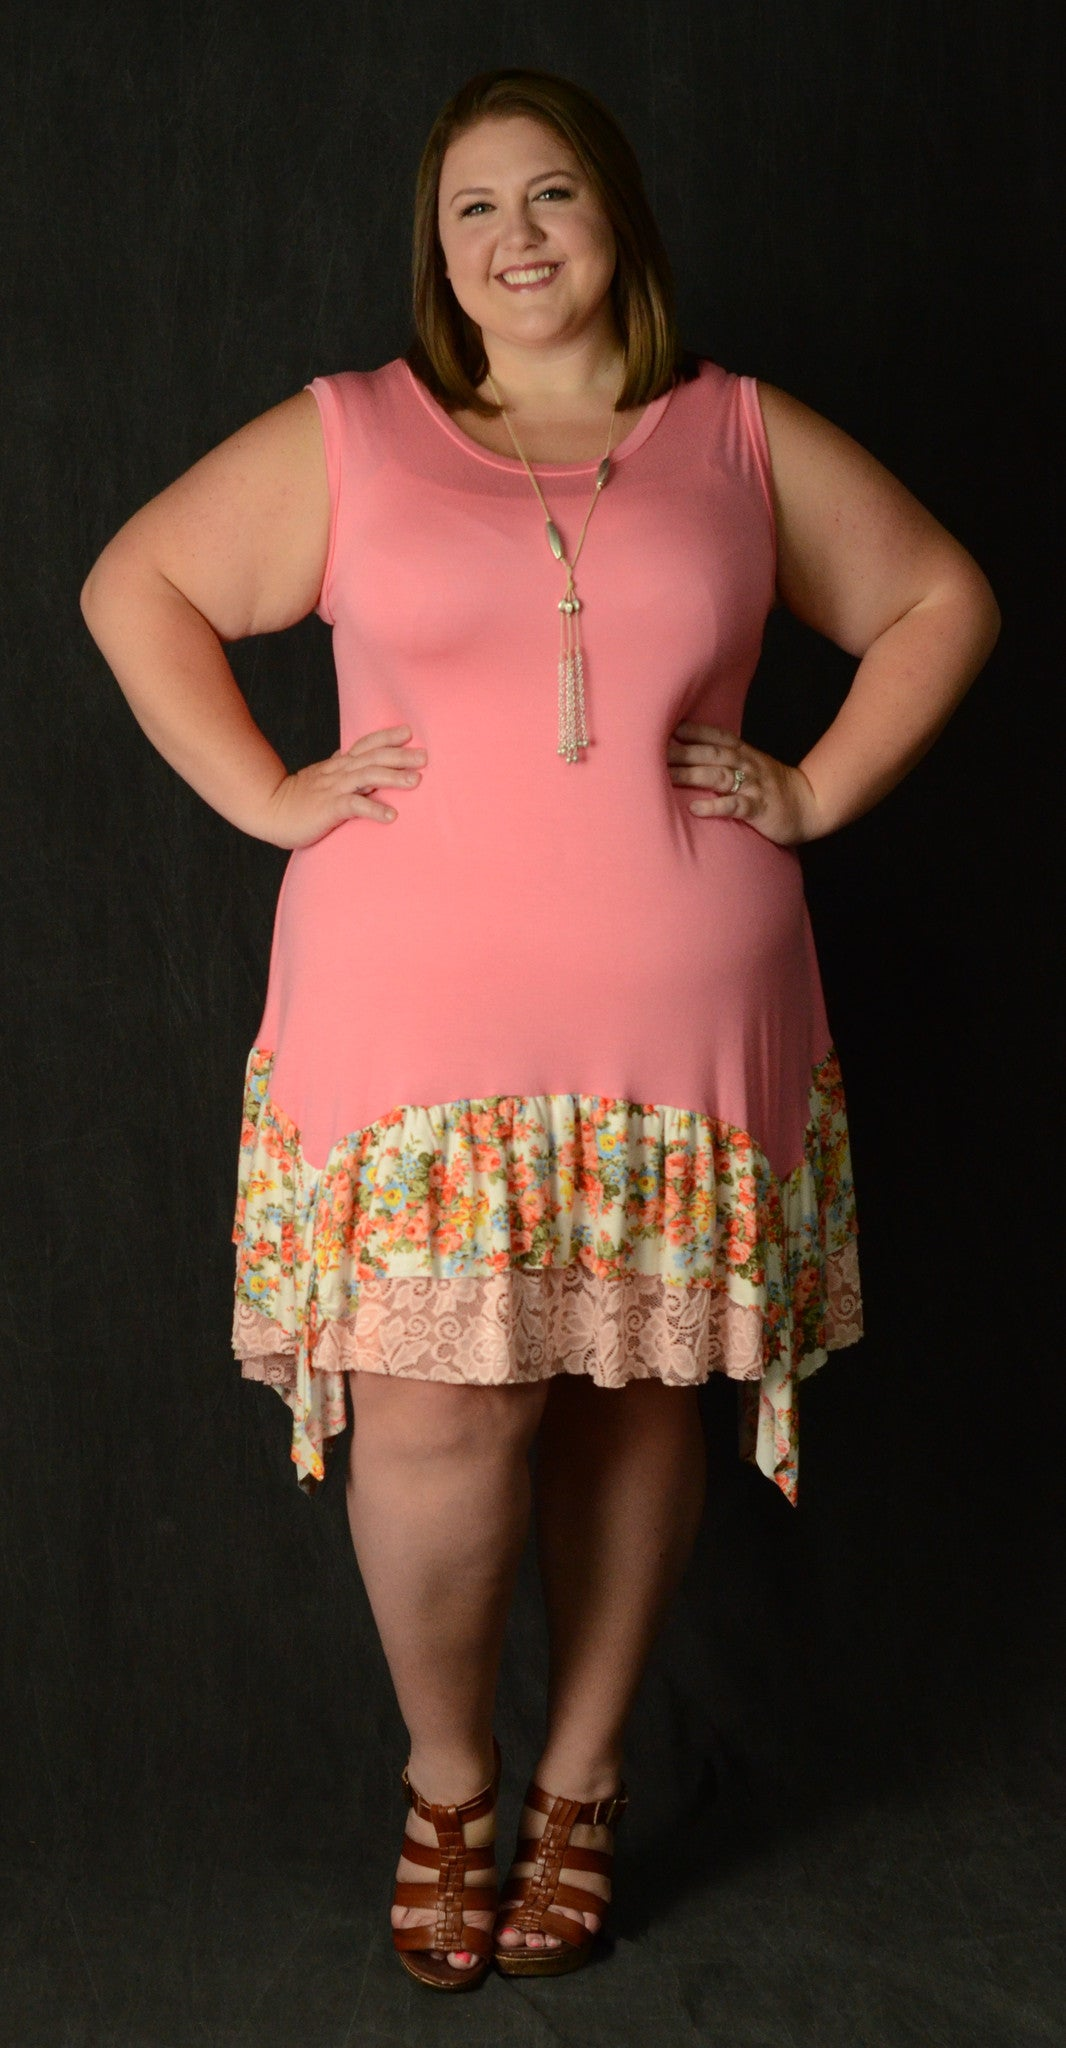 Pink Floral & Lace Tank Dress - www.mycurvystore.com - Curvy Boutique - Plus Size